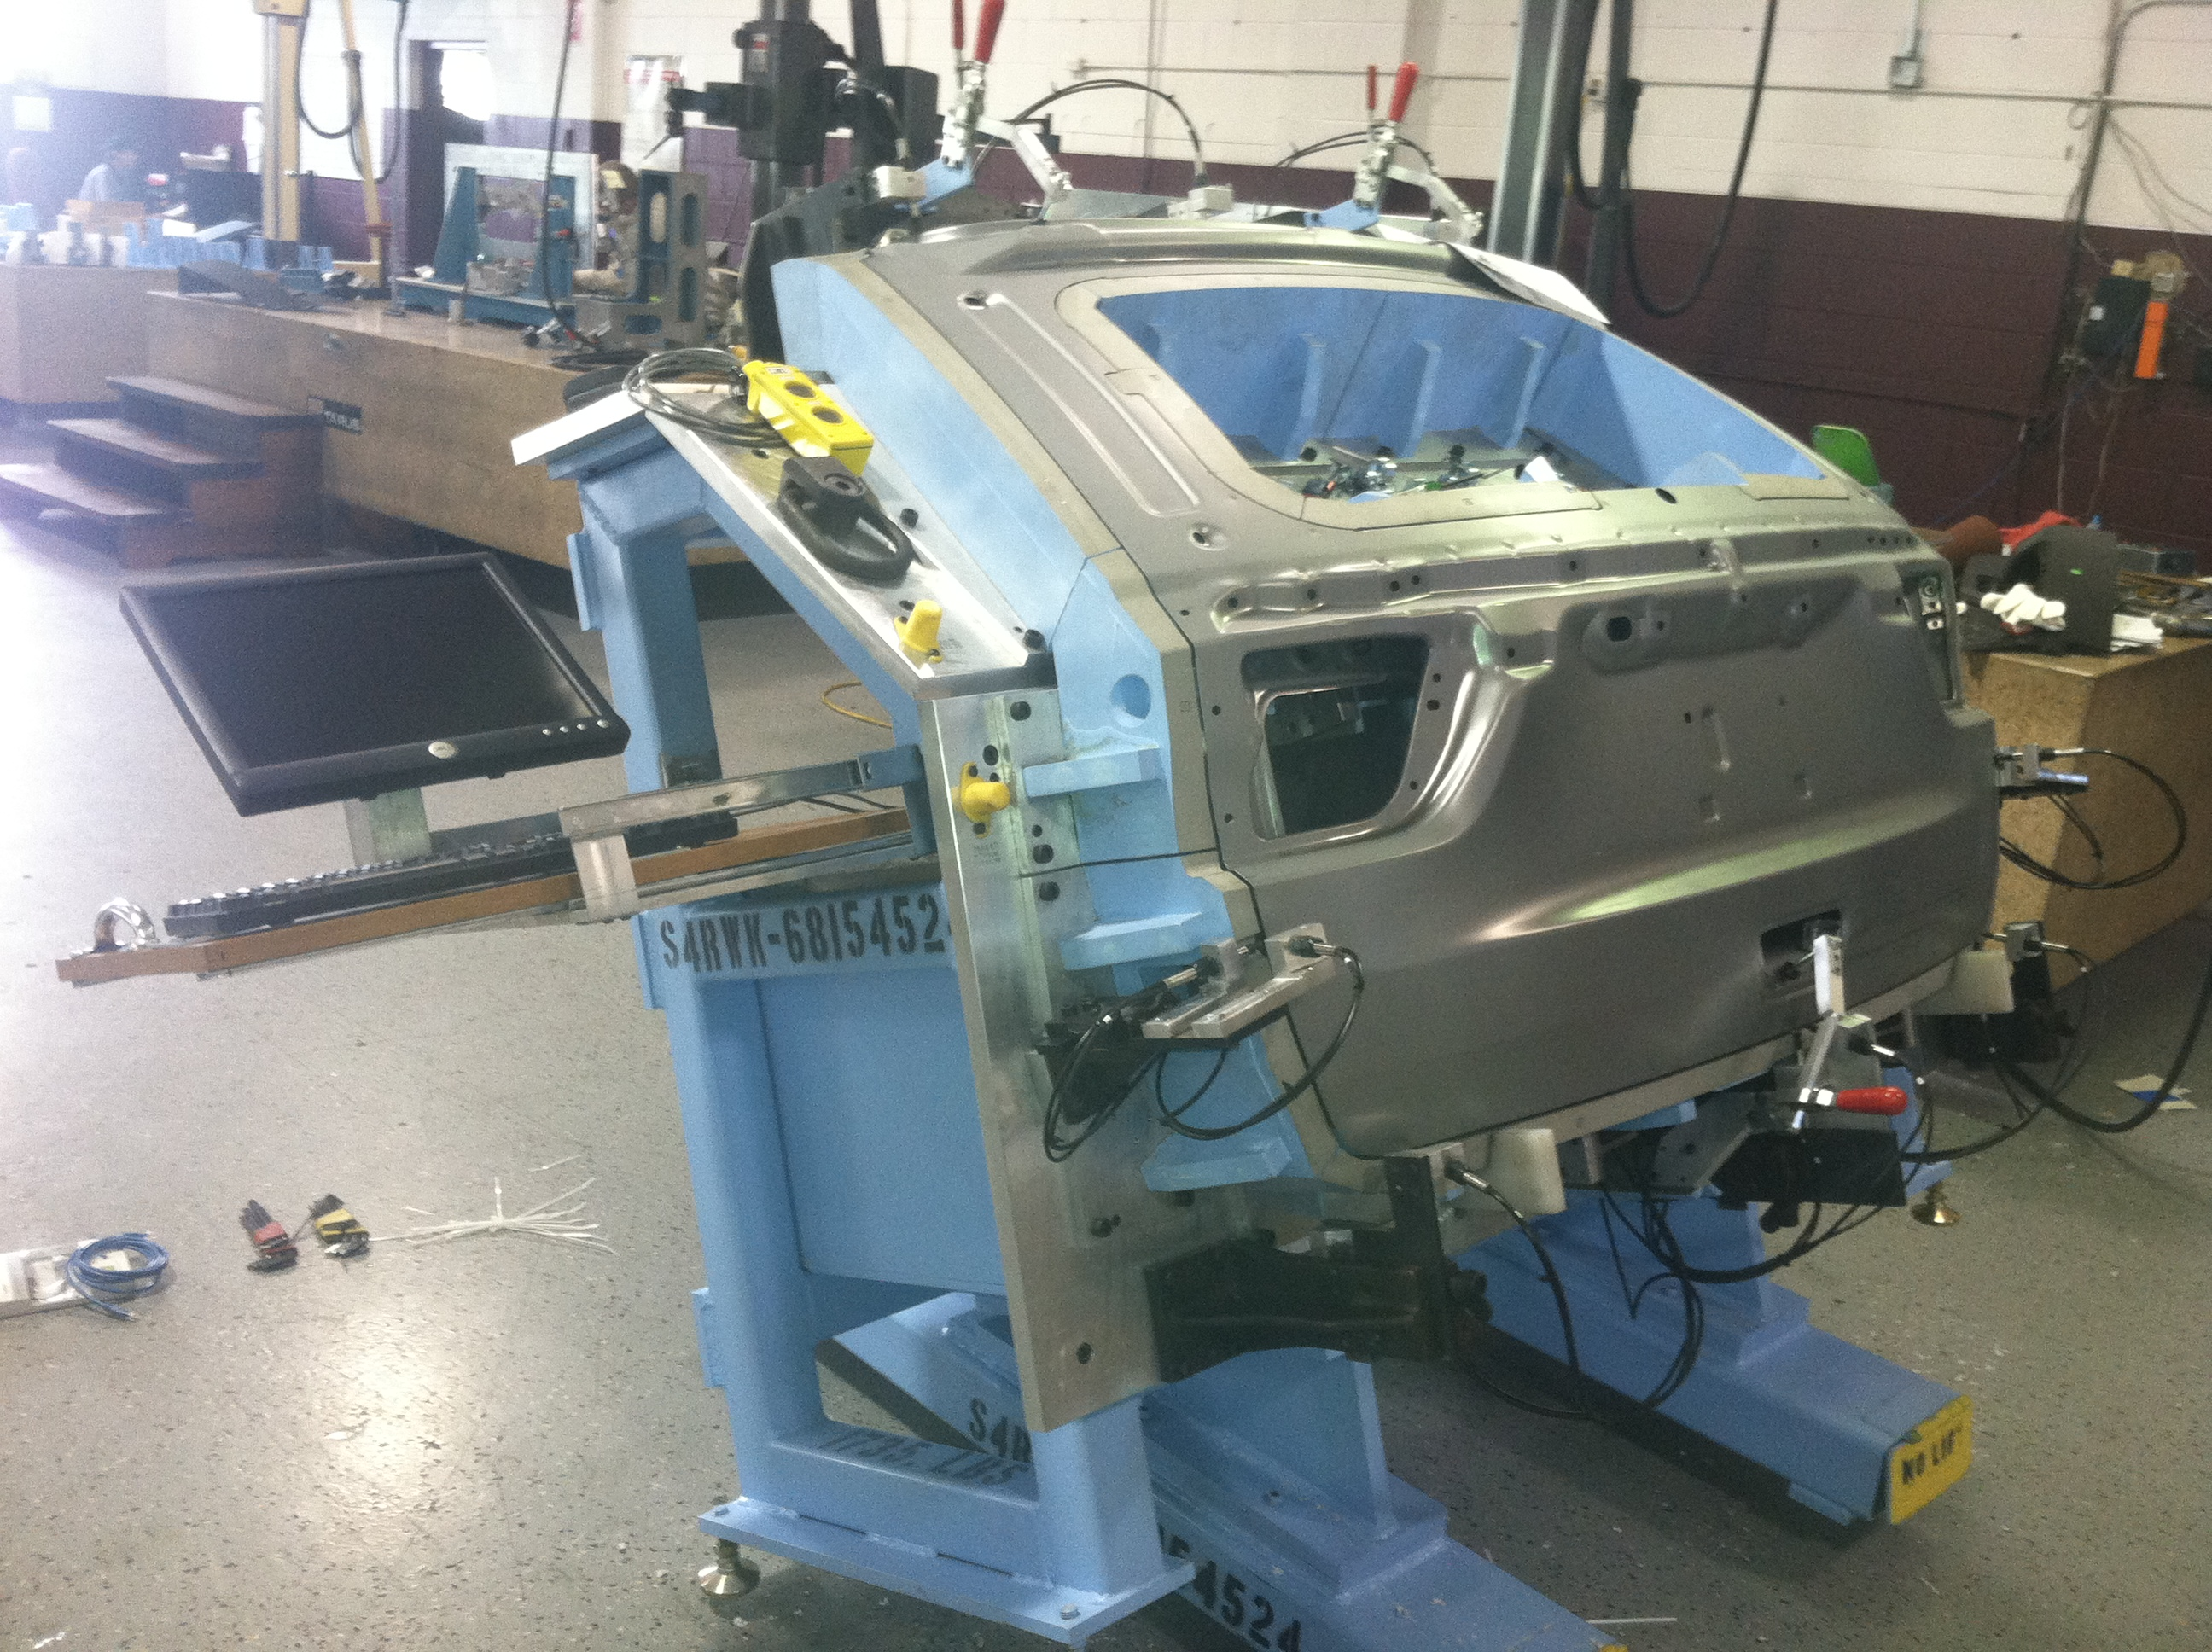 Automotive Body Panel Checking Fixtures from Bermont